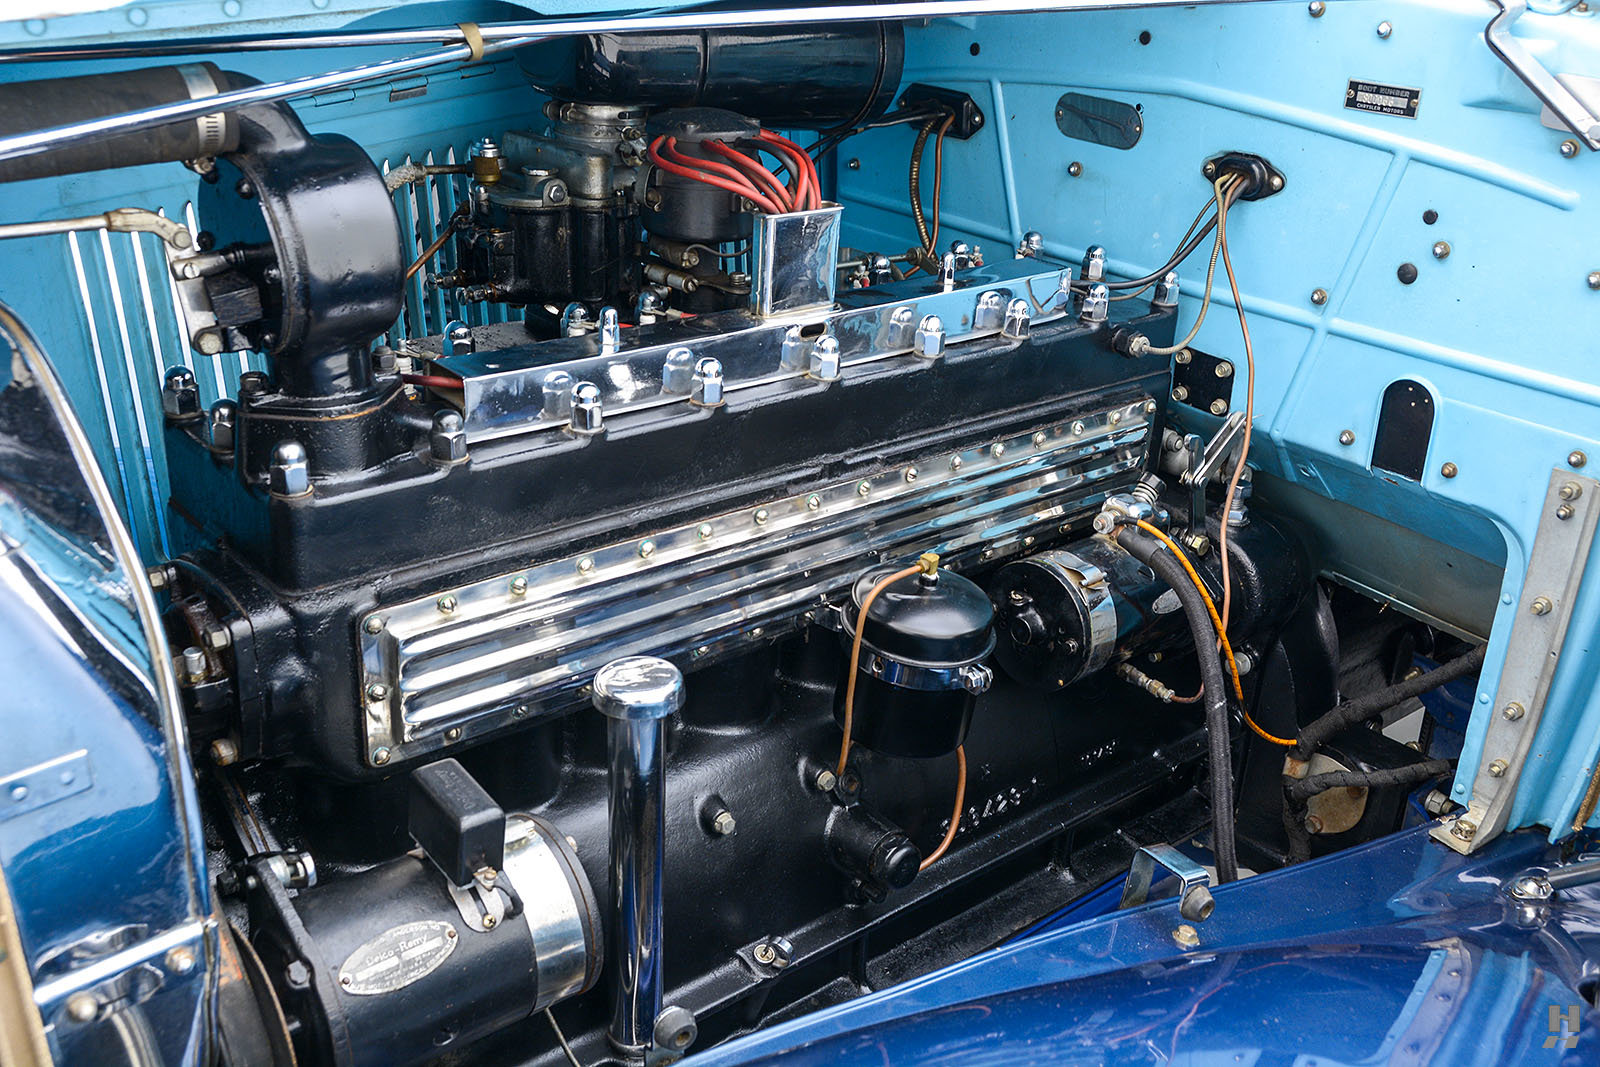 1931 CHRYSLER CG IMPERIAL DUAL COWL PHAETON For Sale (picture 3 of 6)